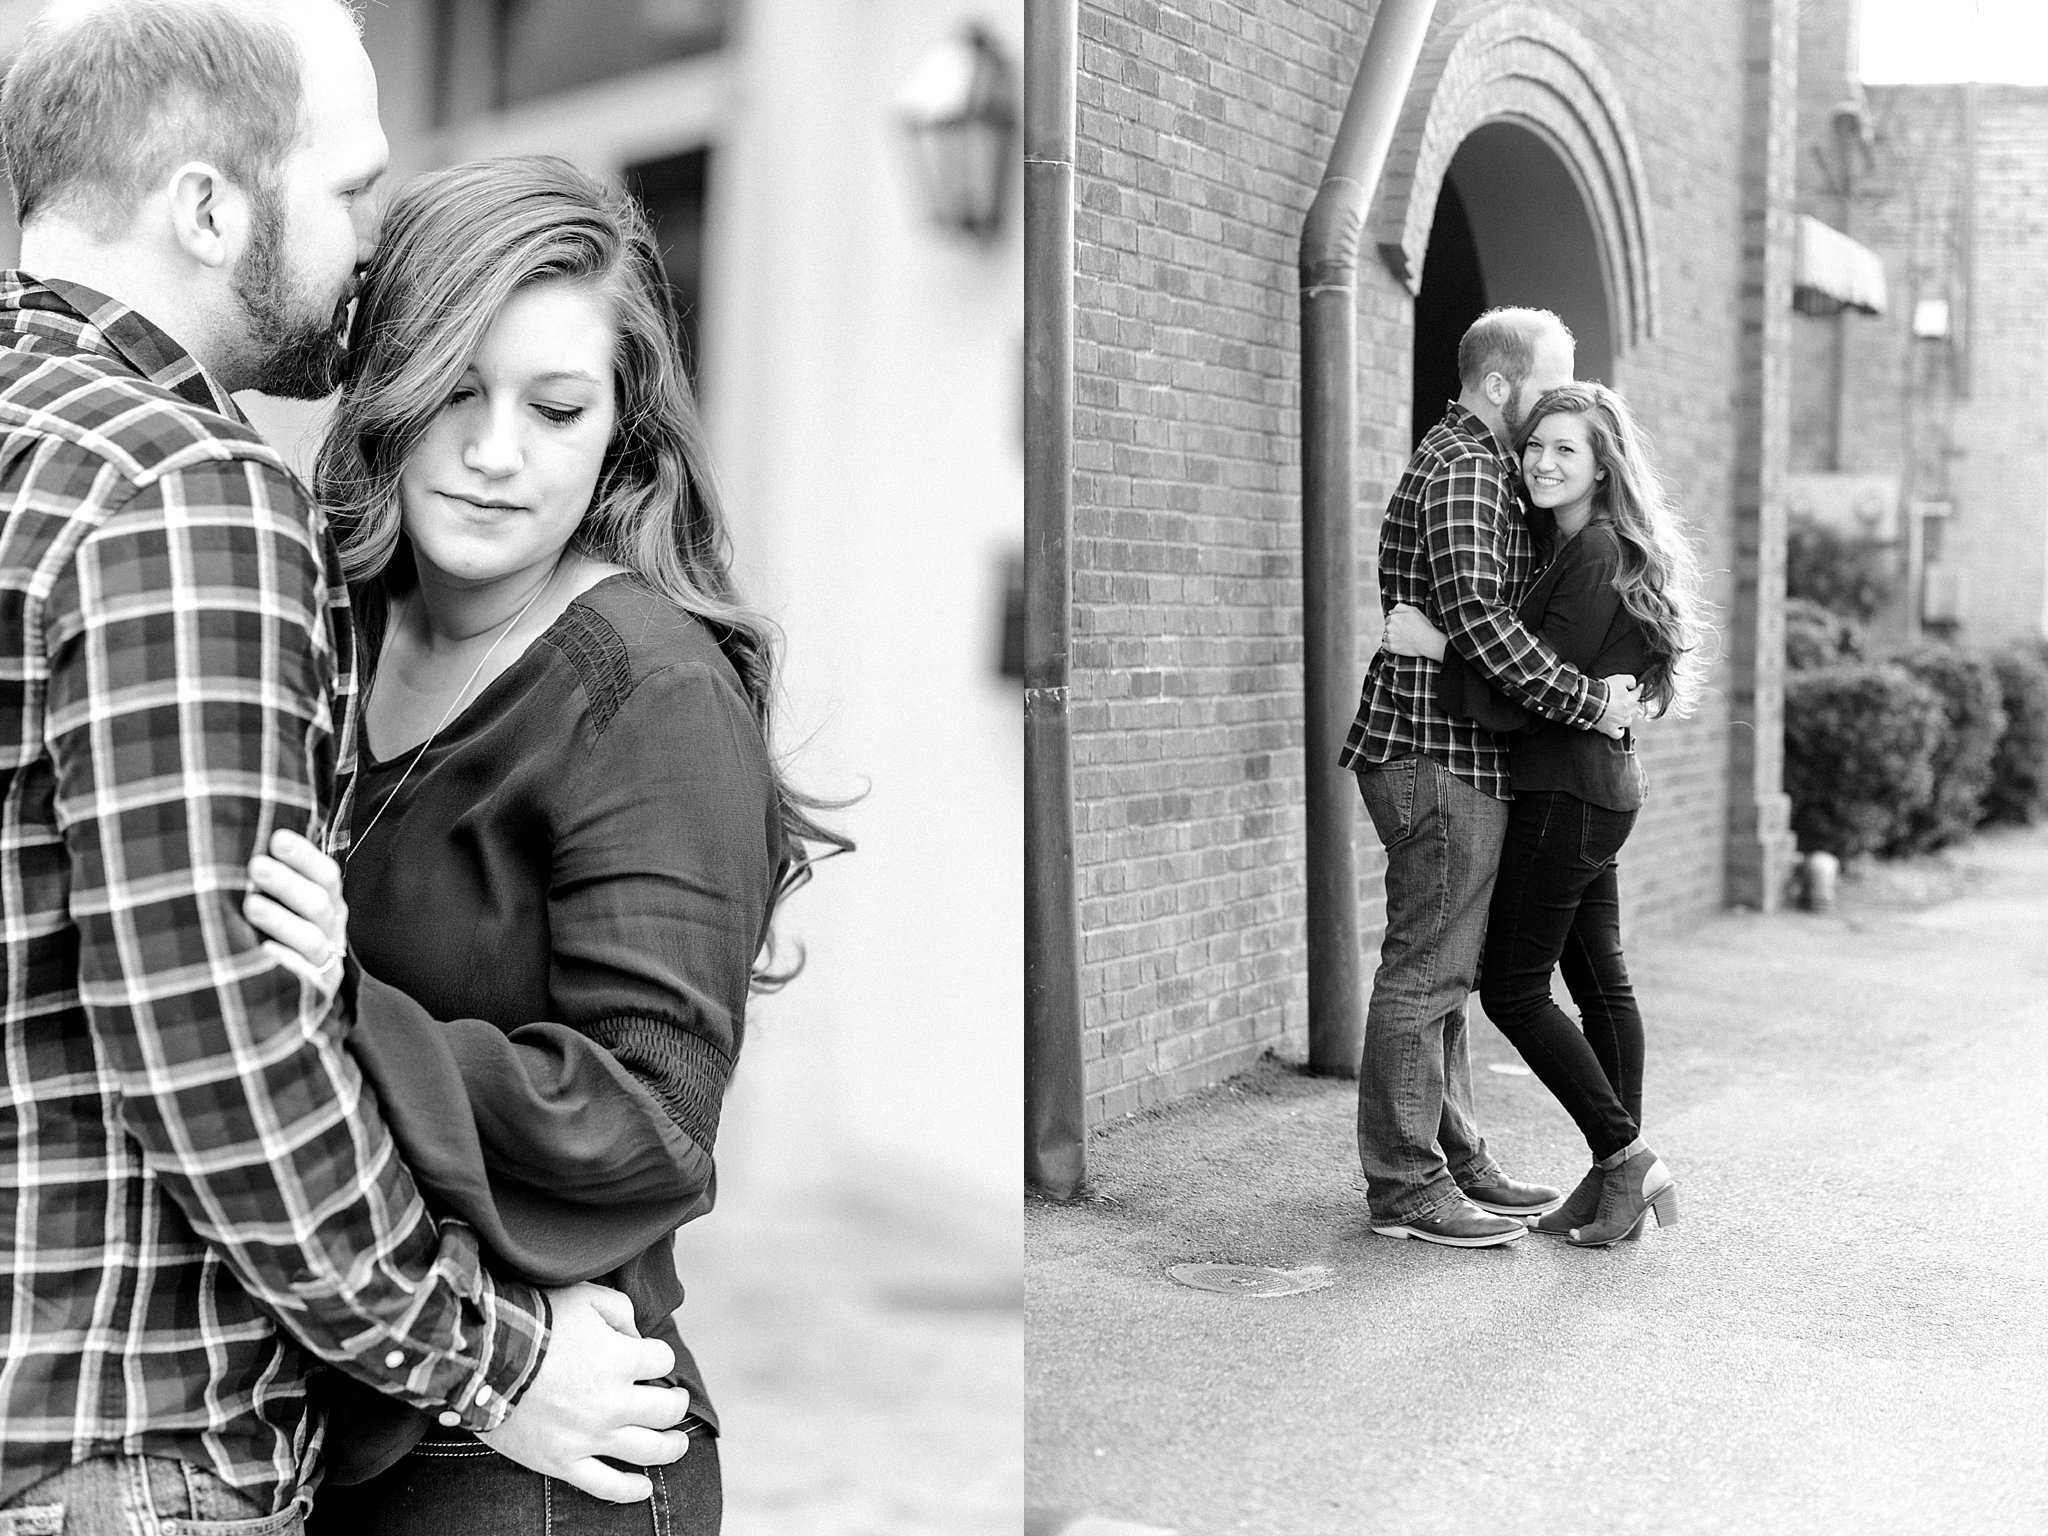 Mantissa Hotel engagement session in Hartsville, SC